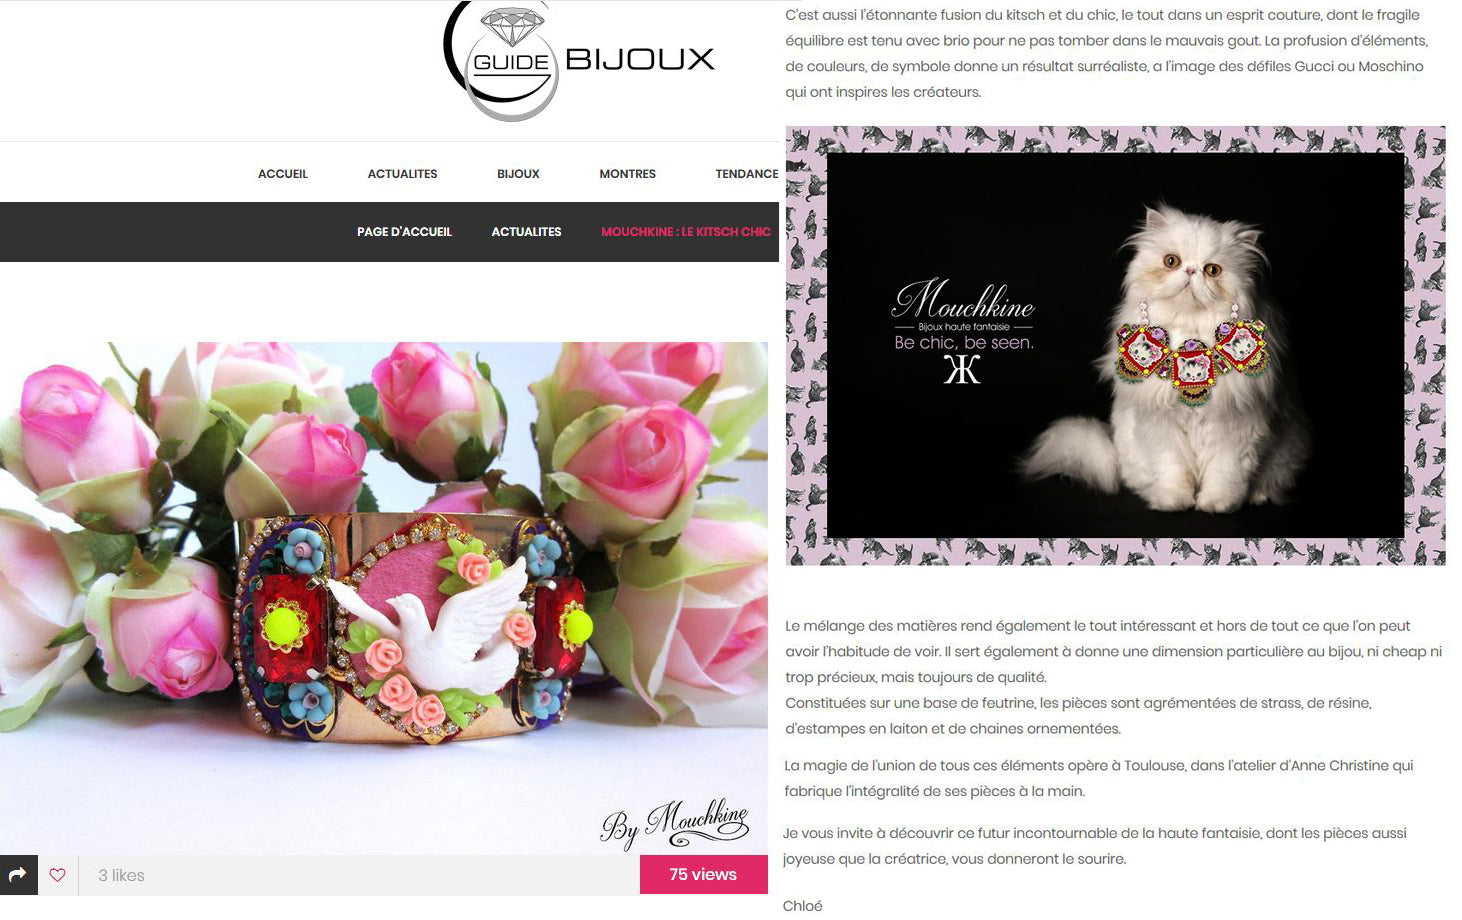 mouchkine jewelry article dans le guide du bijou - Article about Mouchkine Jewelry in the fashion trend site Le guide du bijou